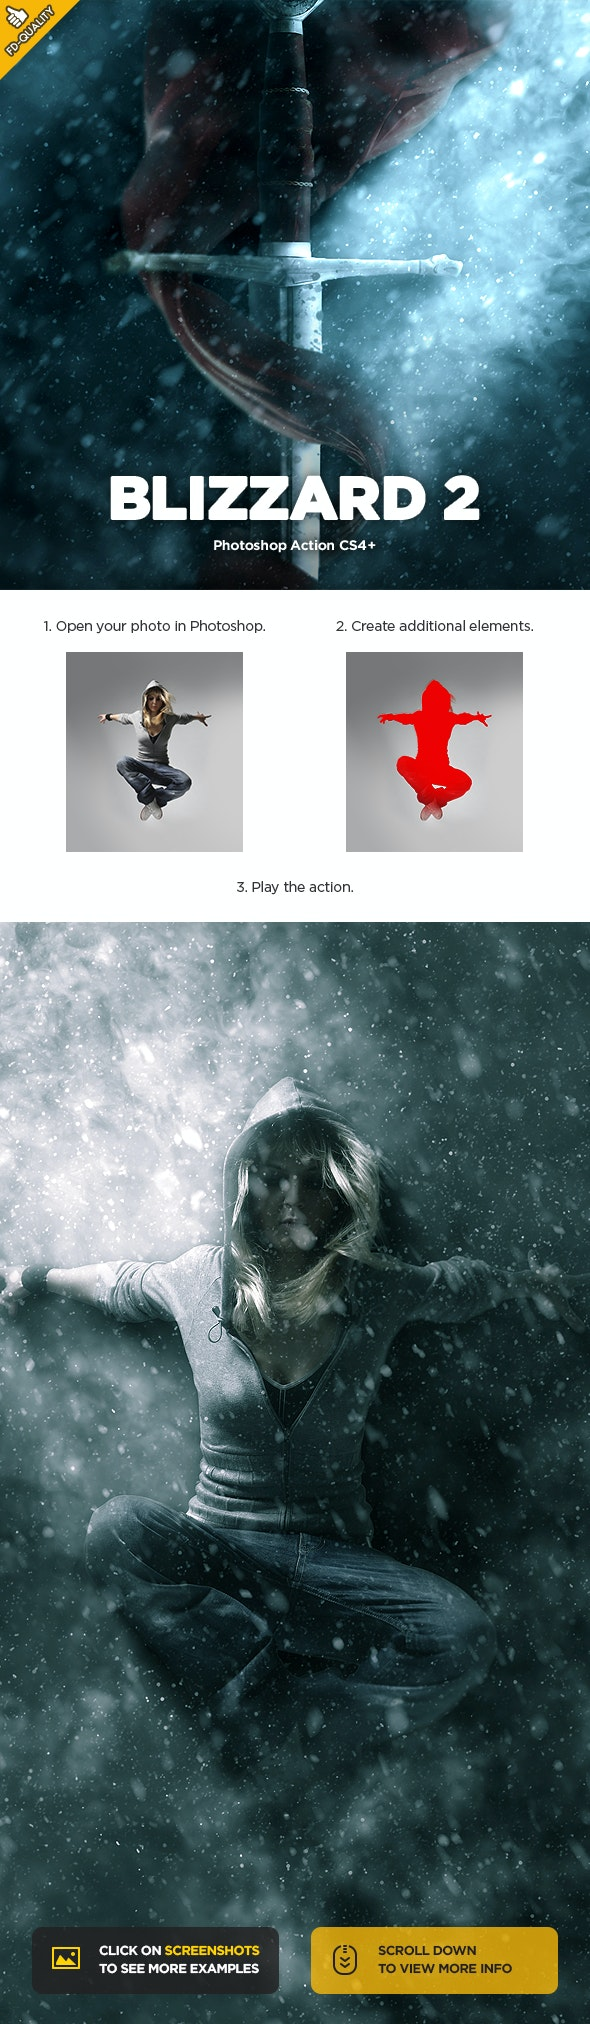 Blizzard 2 CS4+ Photoshop Action - Photo Effects Actions